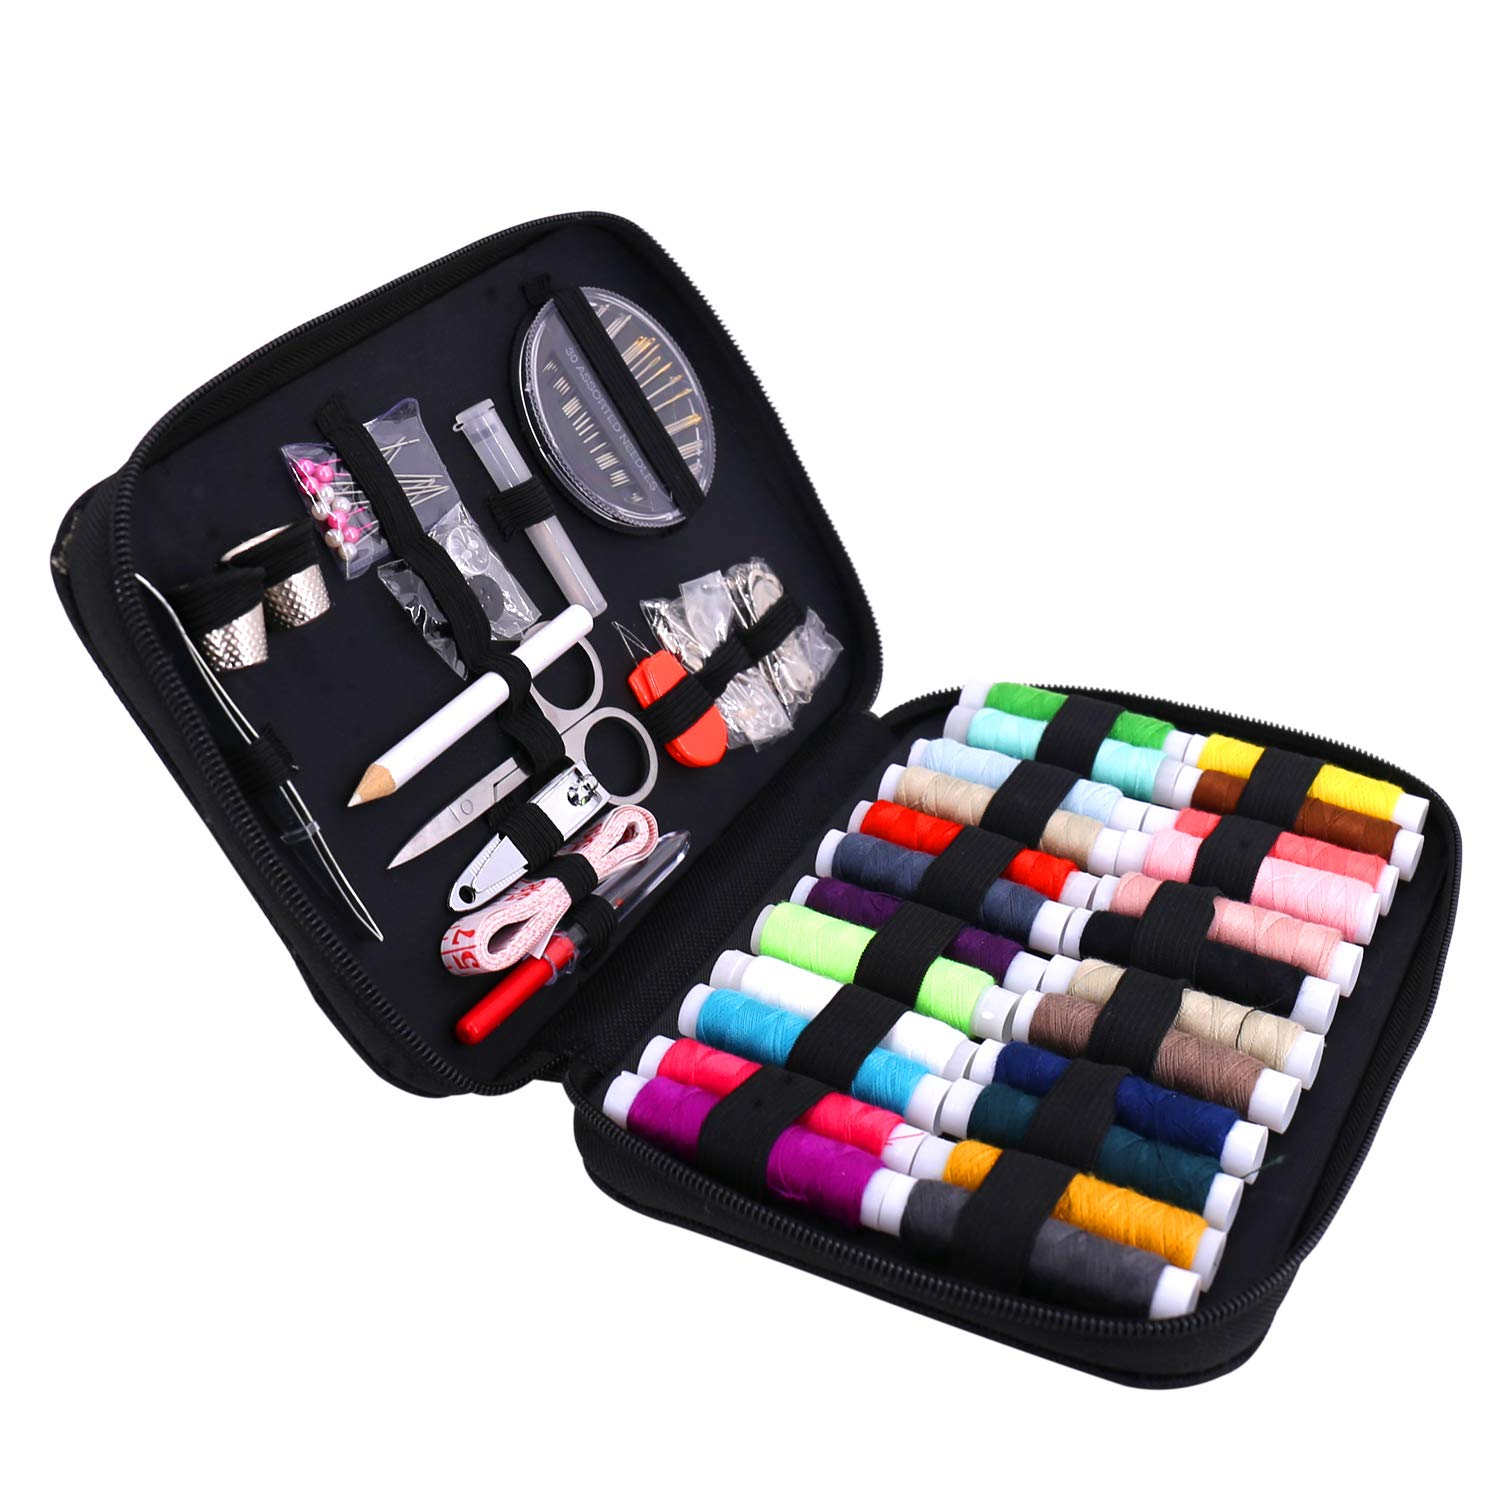 Sewing Kit,Over 90 pcs Premium Sewing Supplies for Home/Travel/DIY/Beginners/Emergency Include Scissors + Thimble + Thread + Needles + Tape Measure (Sewing kit) imoocare